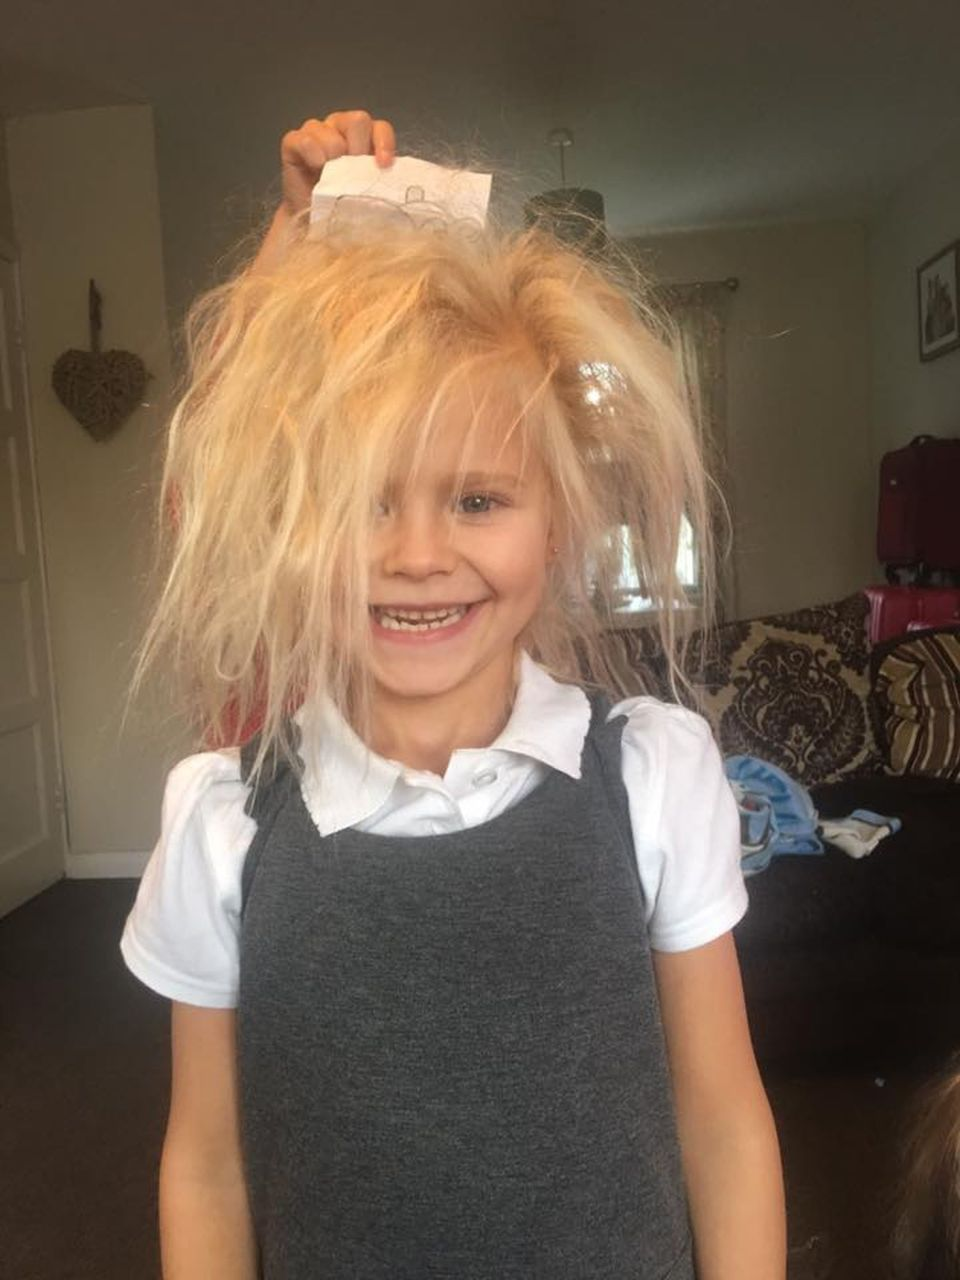 girl with uncontrollable hair